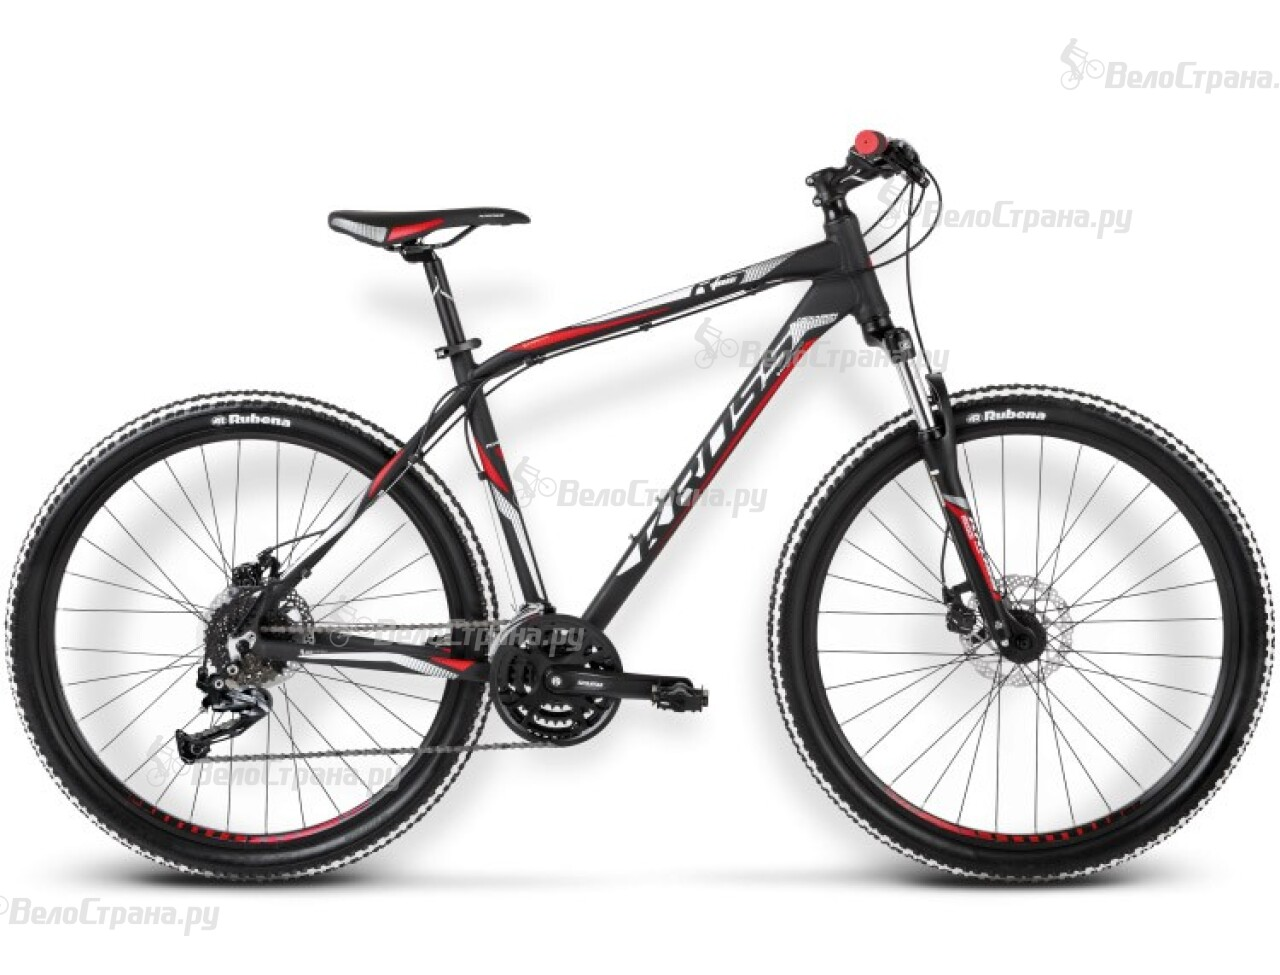 Велосипед Kross Hexagon R5 (2015) велосипед kross hexagon r6 2015